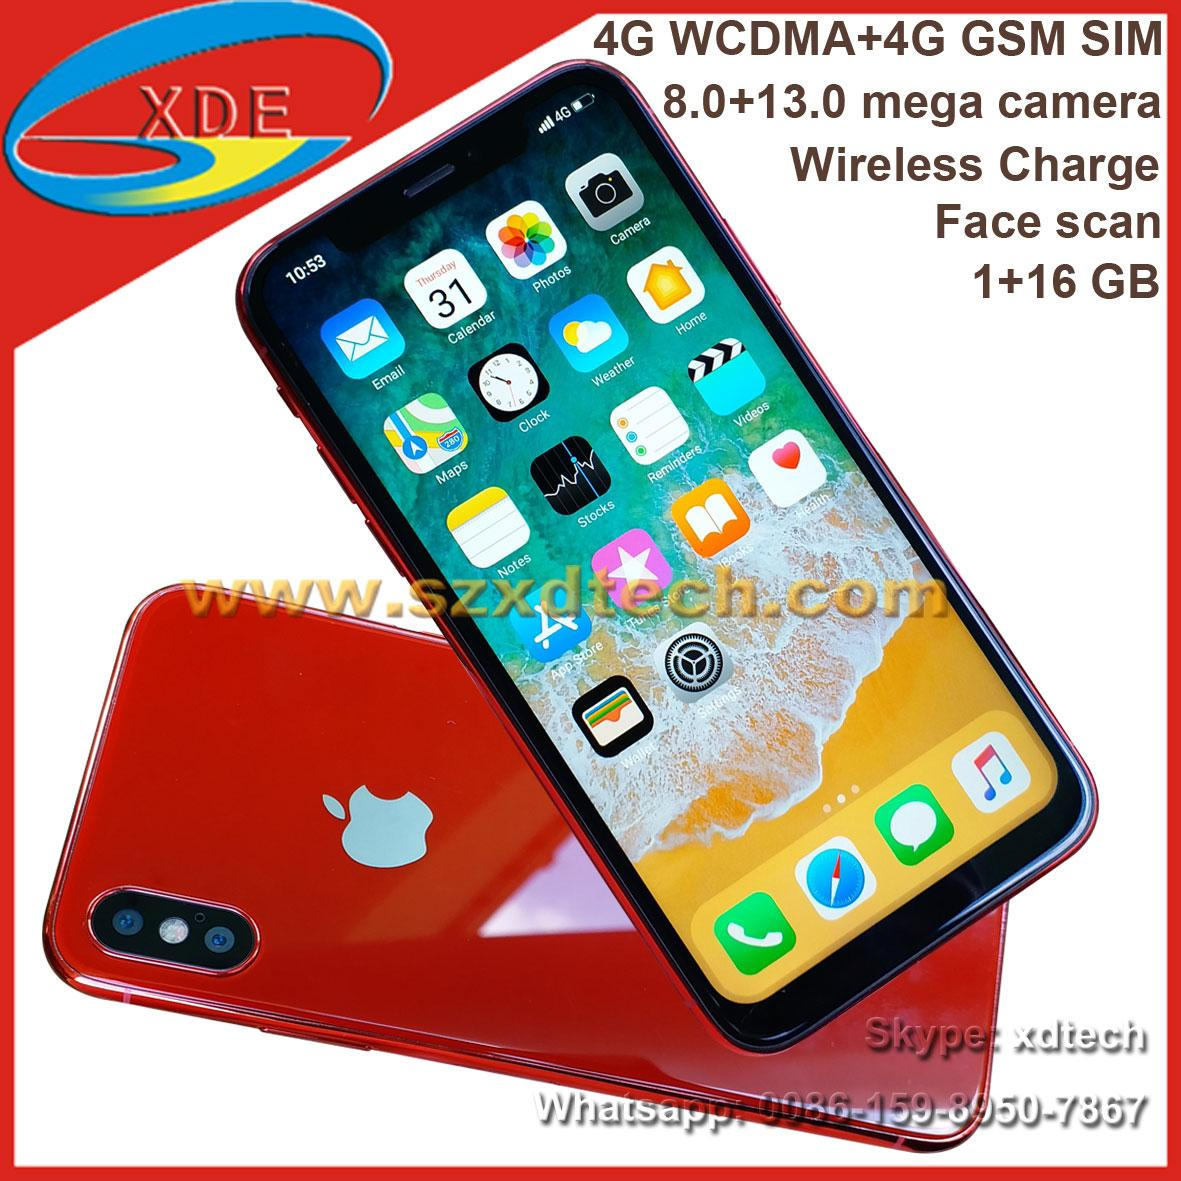 Wholesale iPhone X 1:1 Copy iPhone X Wireless Charge 4G Fast Scan